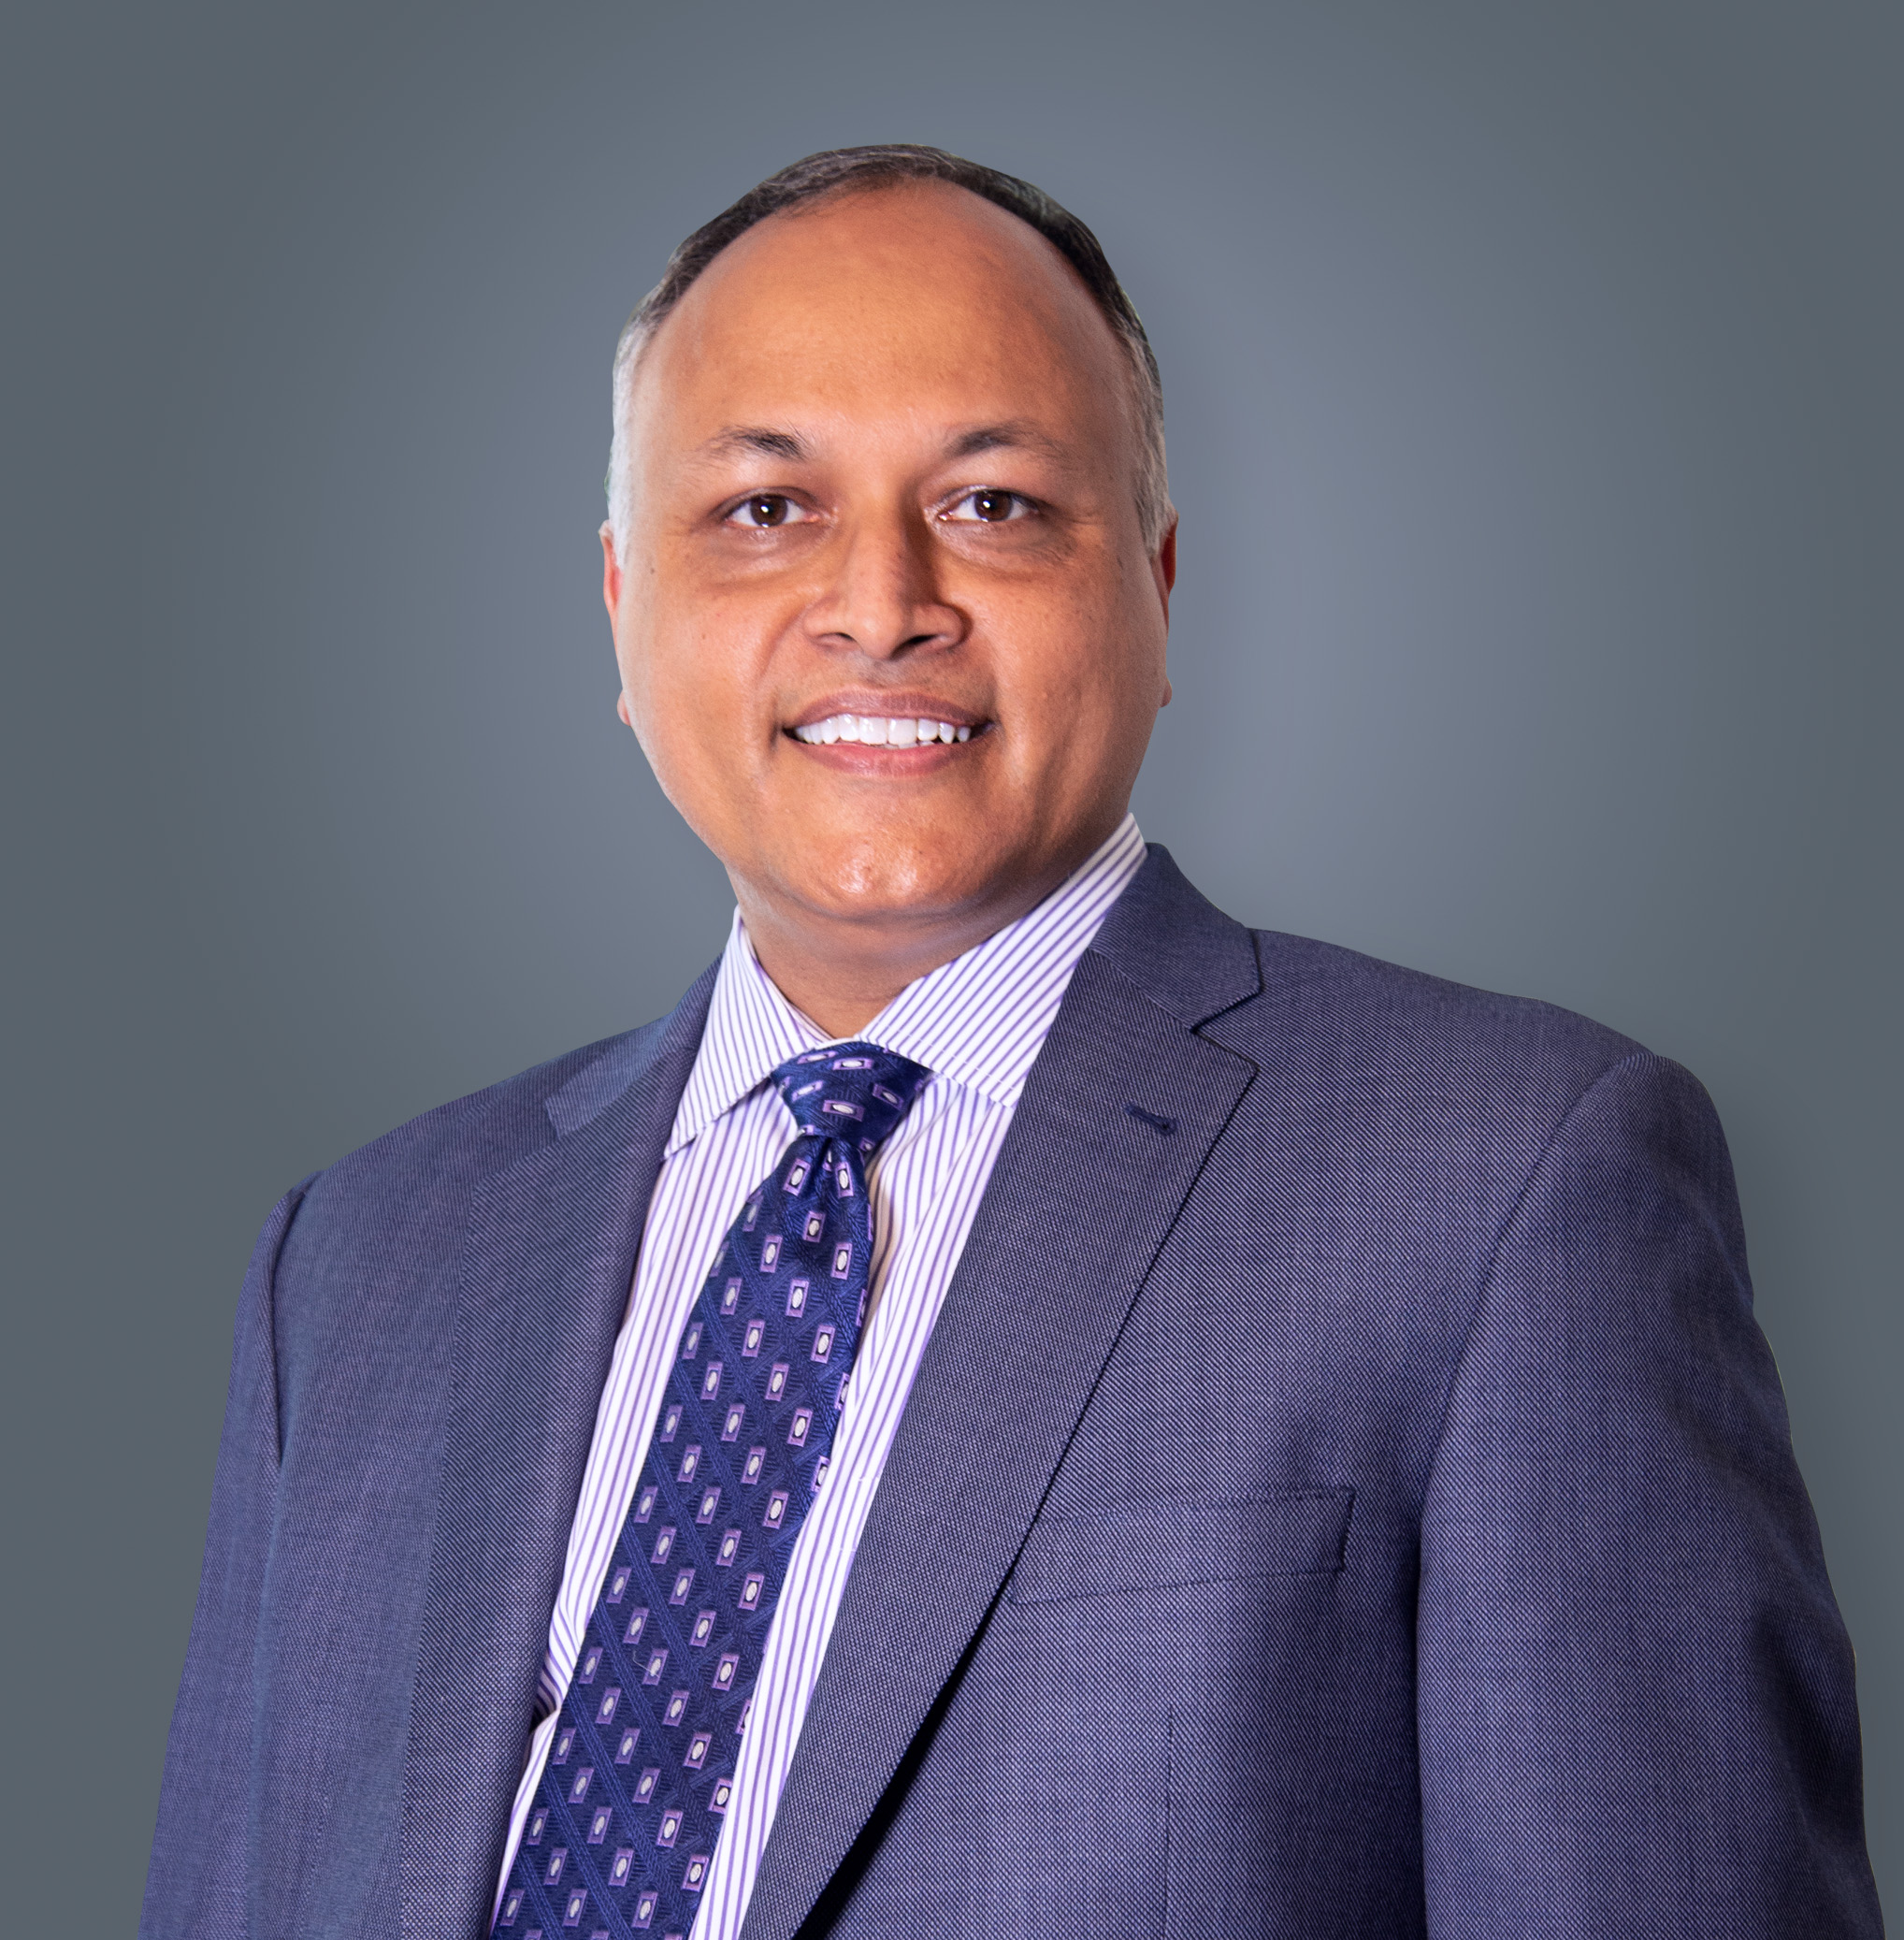 Srini Iyer, ManTech's Chief Technology Officer